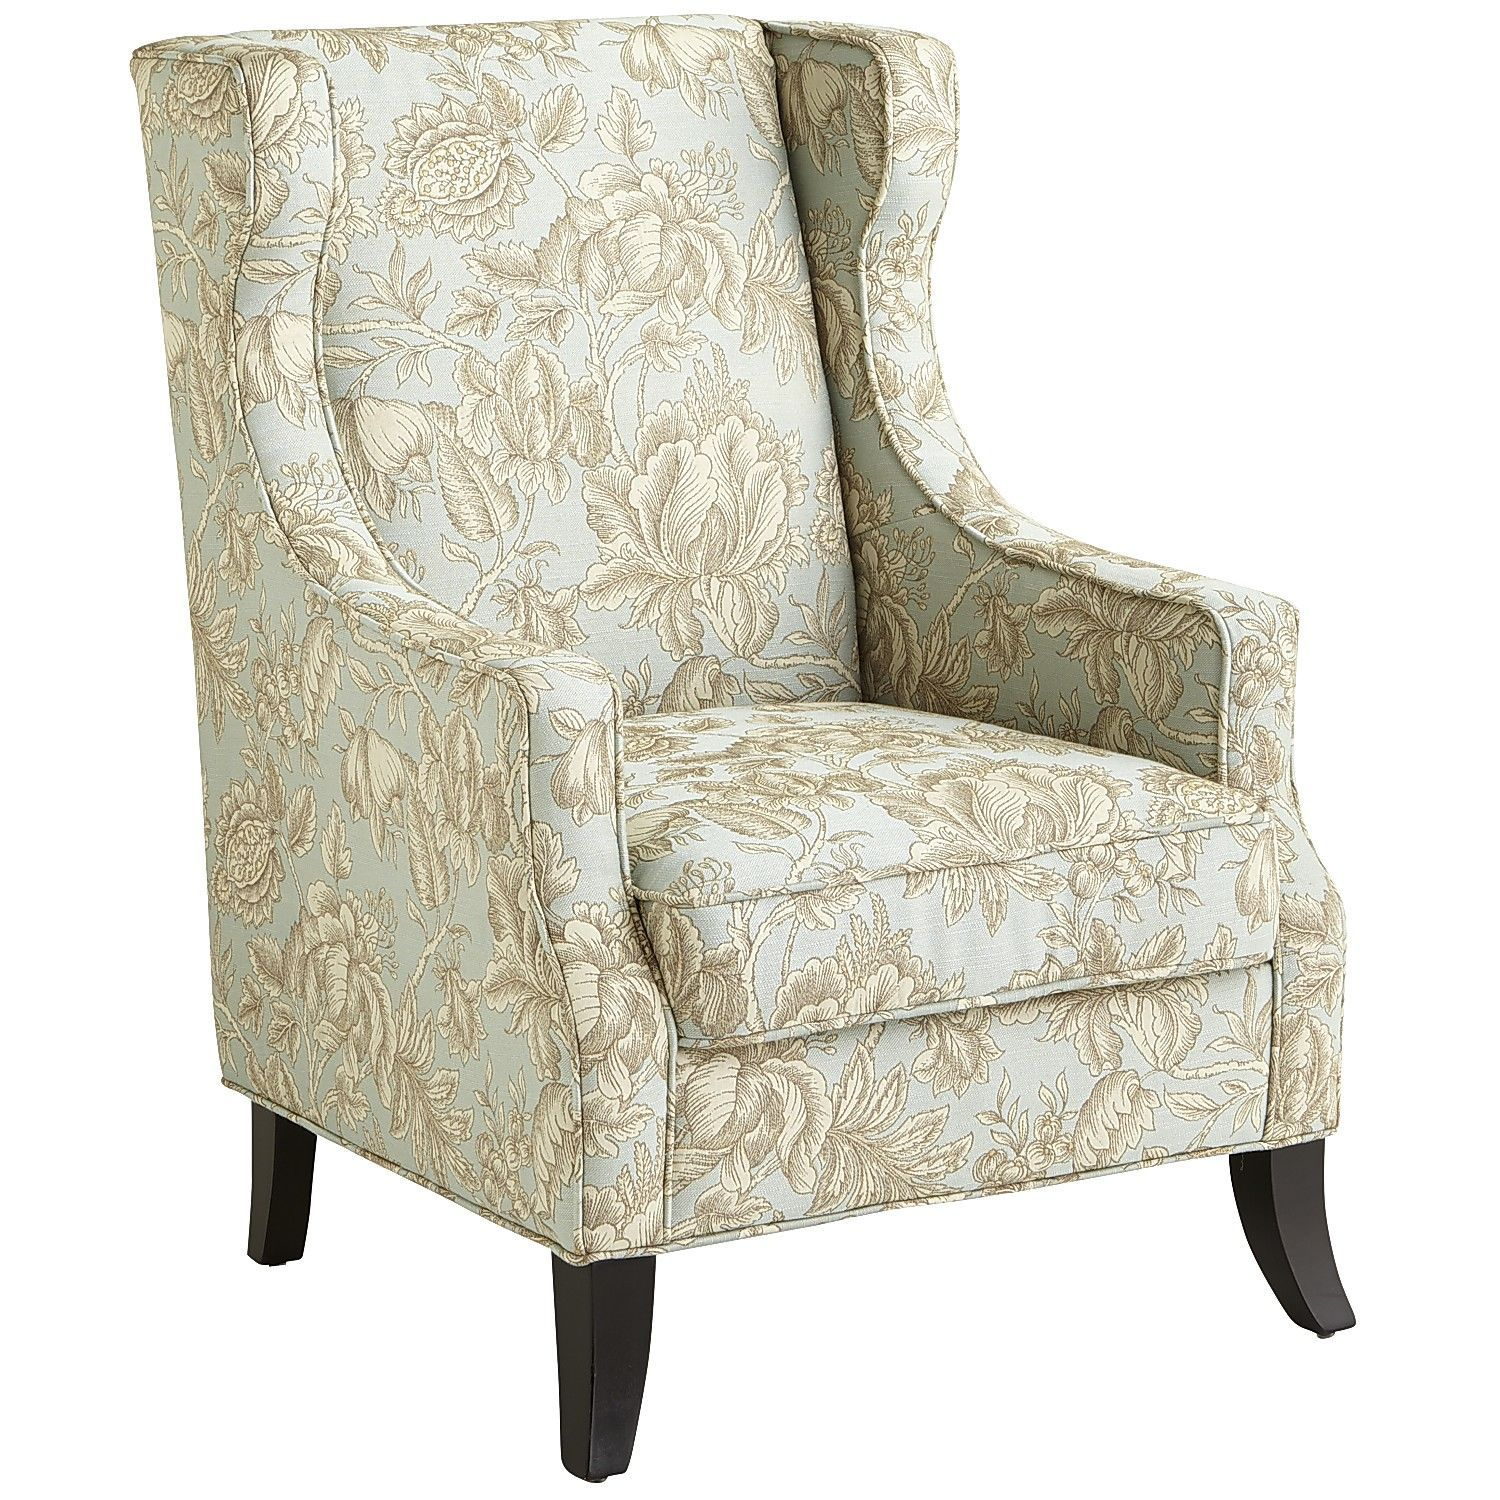 Floral Wingback Chair Alec Blue Floral Wing Chair Fla Livingroom Leather